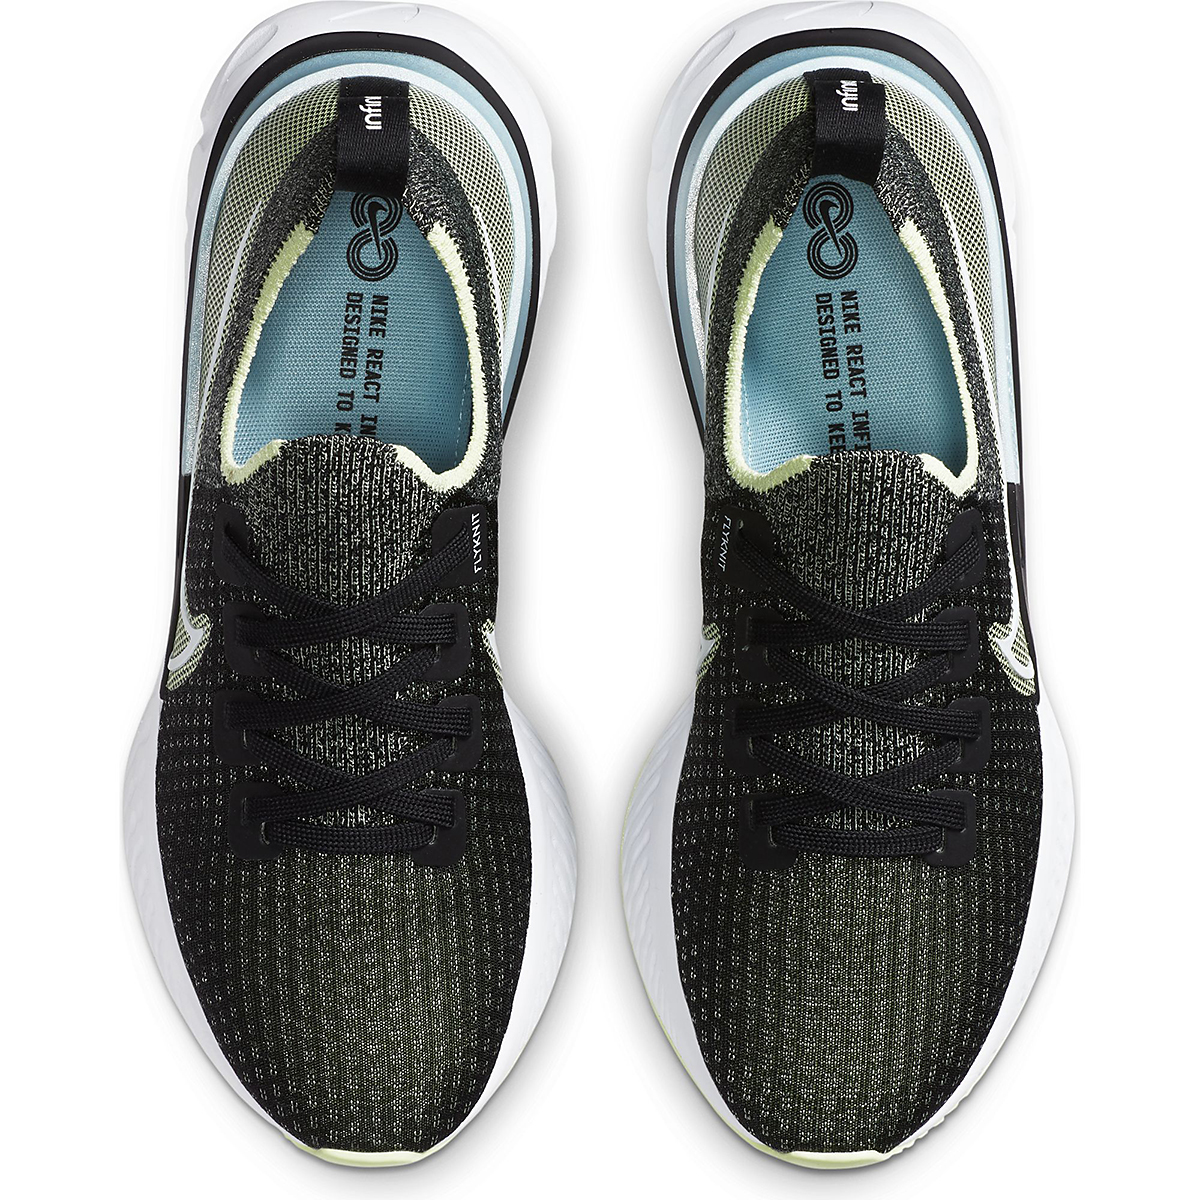 Women's Nike Nike React Infinity Run Flyknit Running Shoe - Color: Black/White-Barely Volt-Glacier Ice - Size: 5 - Width: Regular, Black/White-Barely Volt-Glacier Ice, large, image 4